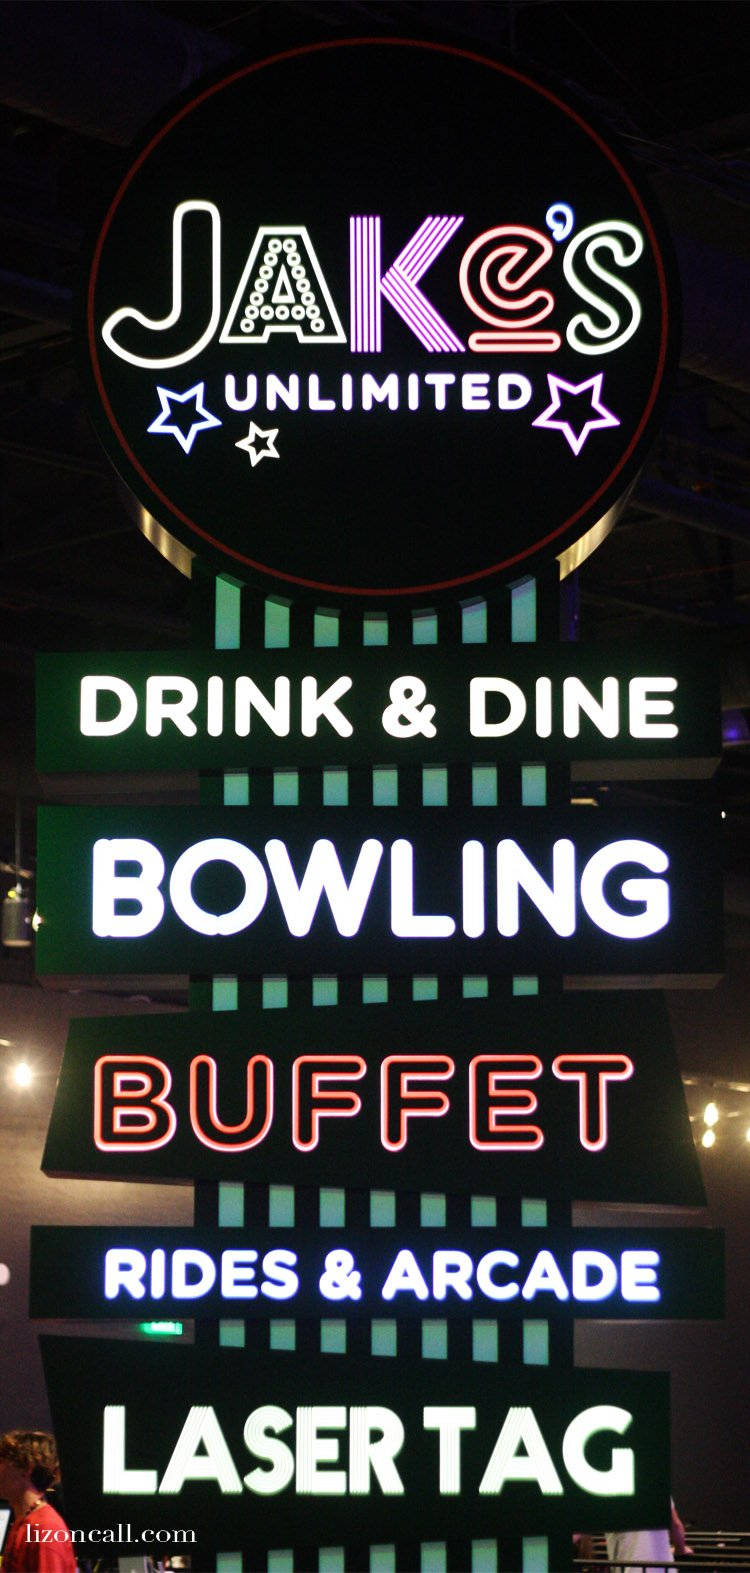 Jake's Unlimited in Phoenix AZ has bowling, buffet, rides, arcade games and Laser tag